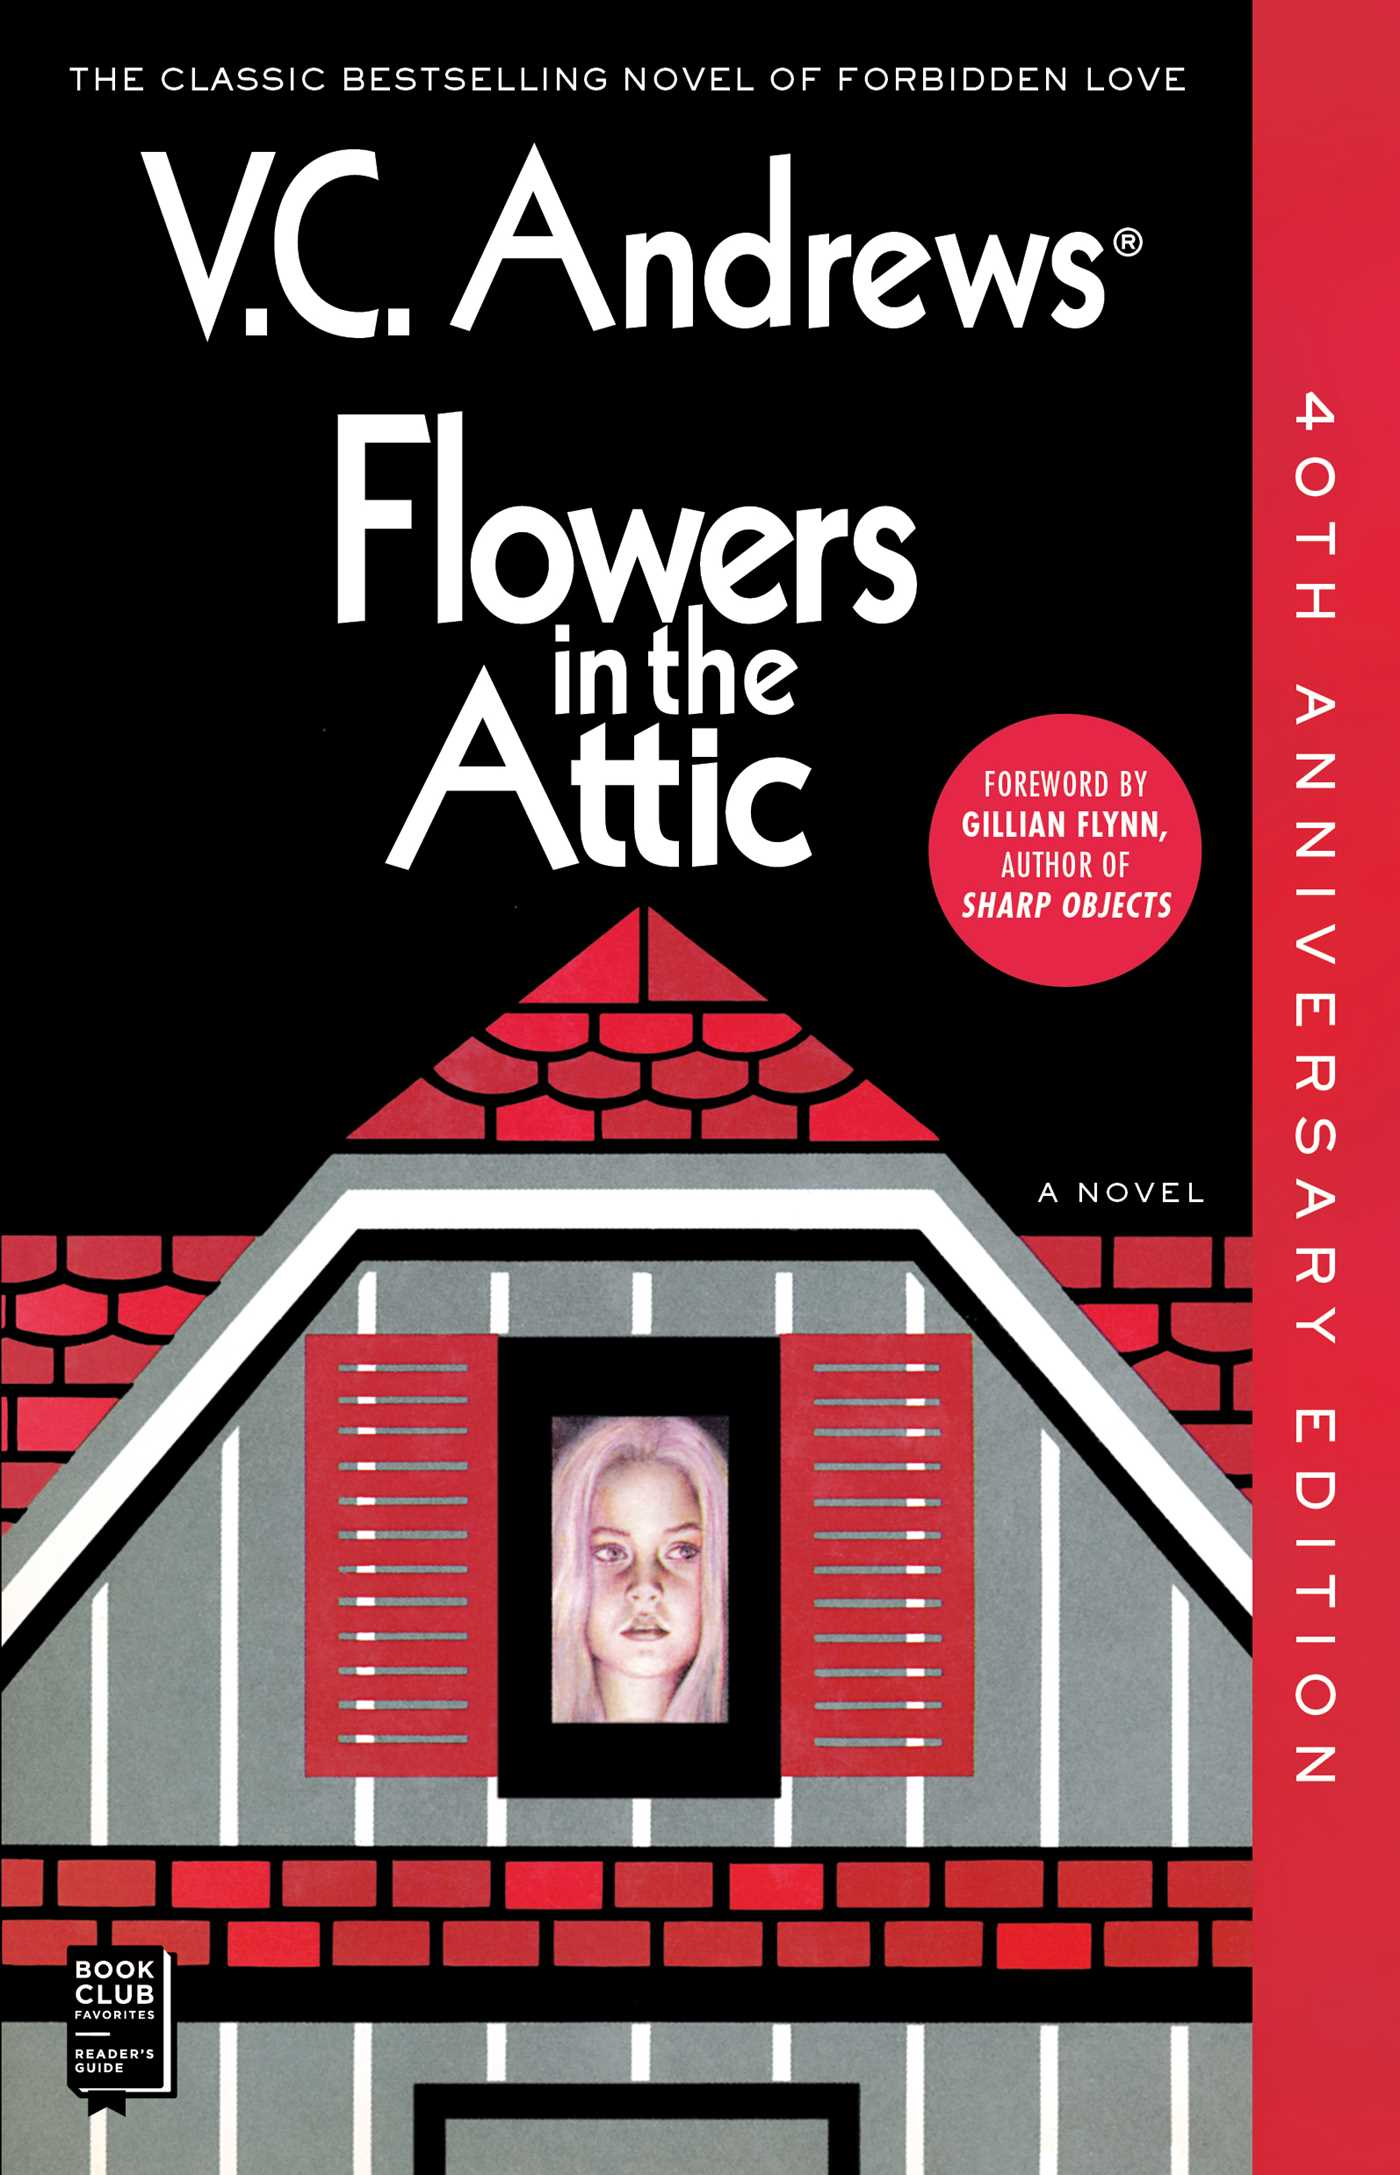 Flowers-in-the-attic-9781451636949_hr